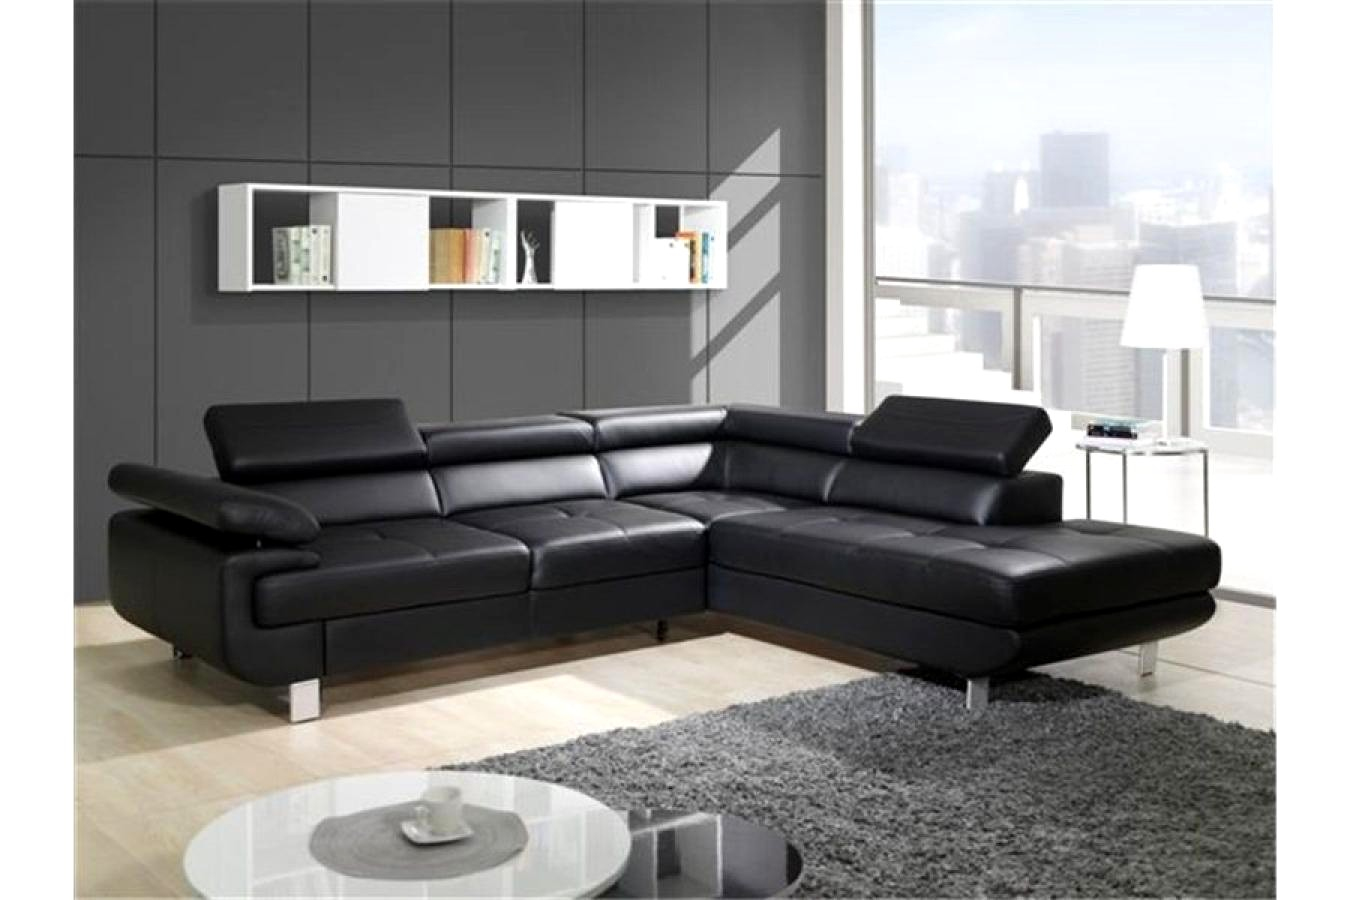 canape angle cuir but nouveau stock maha s canap en rotin thuis mahagranda. Black Bedroom Furniture Sets. Home Design Ideas